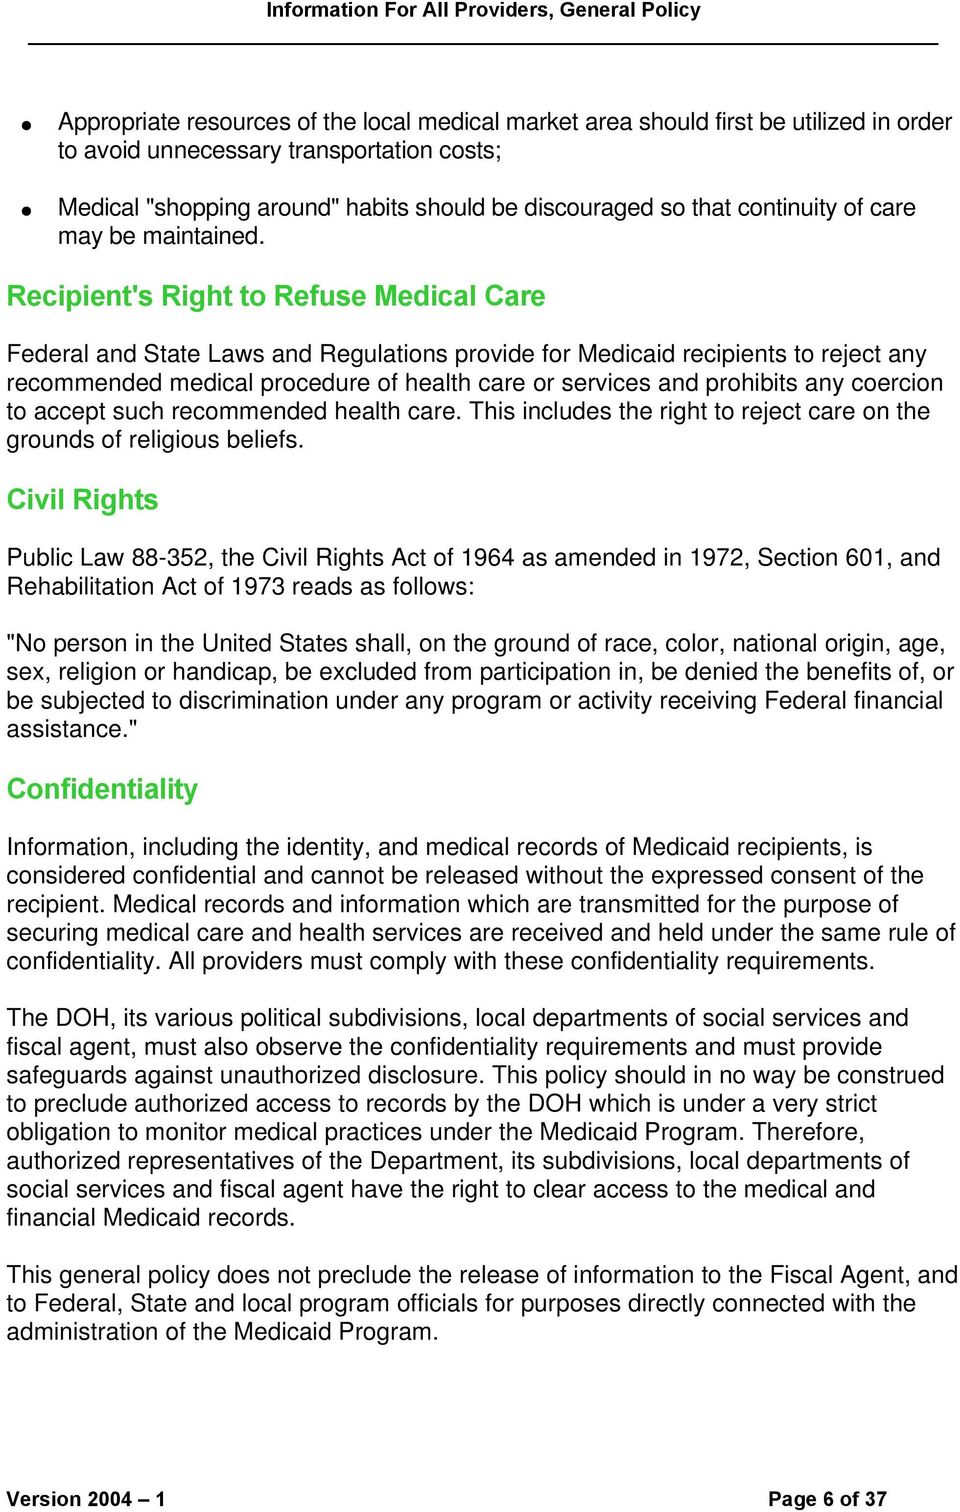 Recipient's Right to Refuse Medical Care Federal and State Laws and Regulations provide for Medicaid recipients to reject any recommended medical procedure of health care or services and prohibits